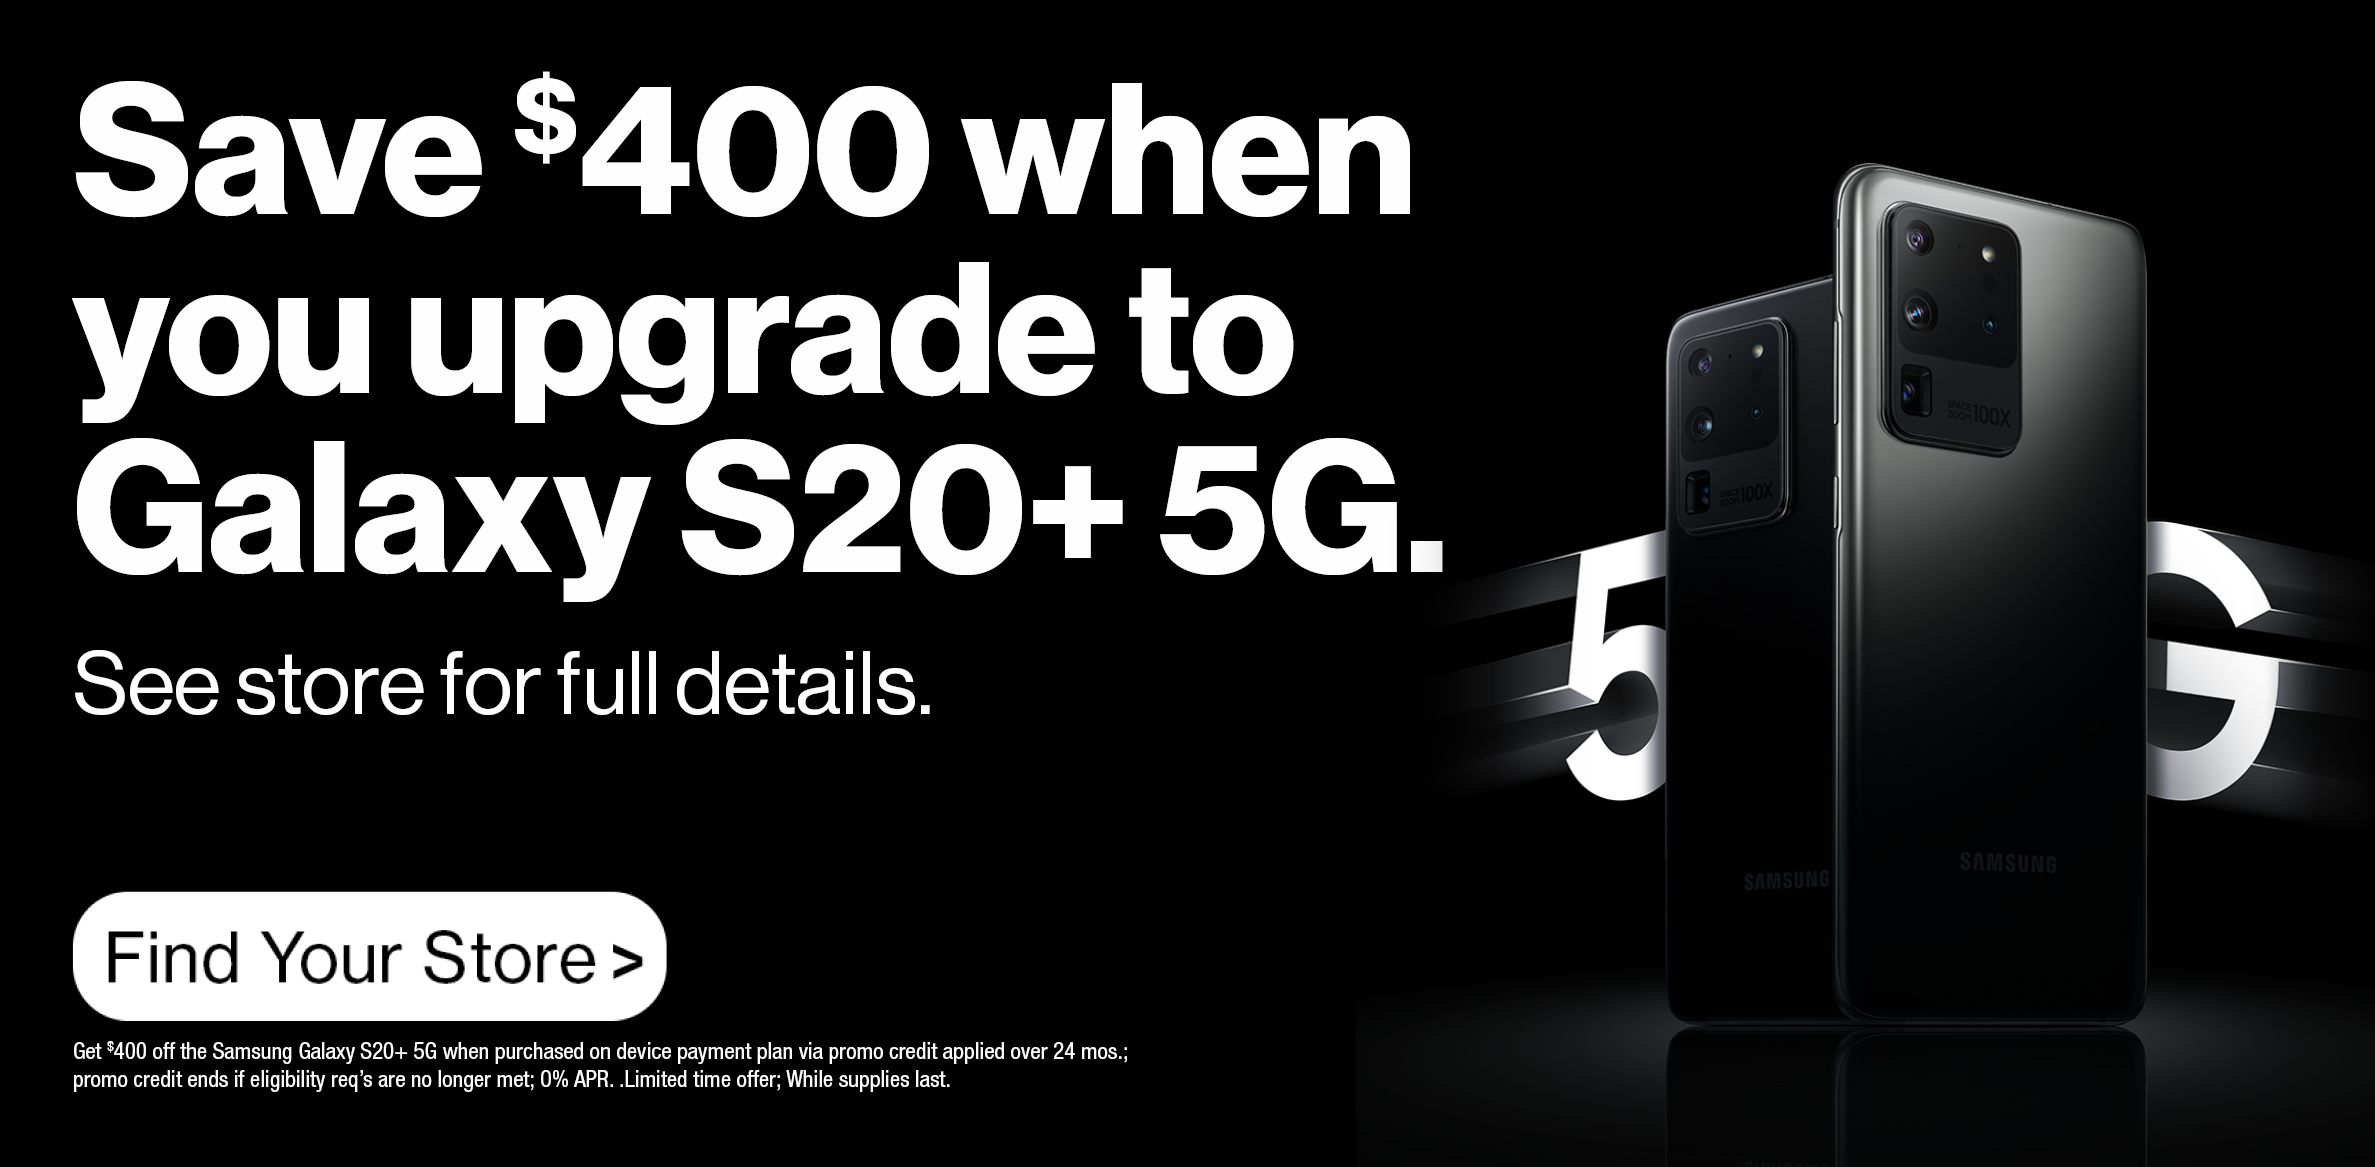 Get $400 off when you upgrade to the Galaxy S20+ 5G - no trade in required.